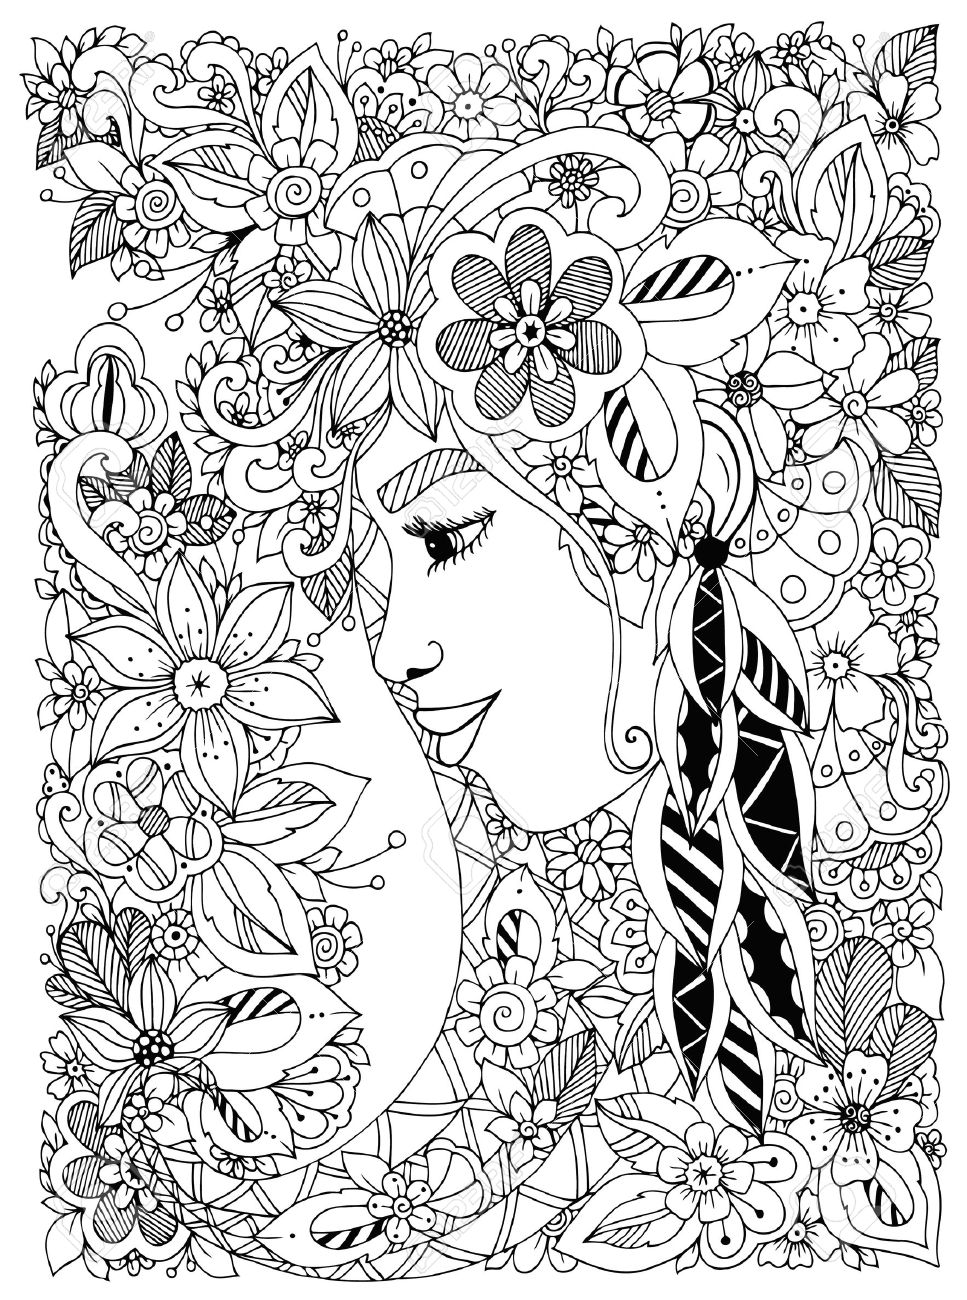 Vector Illustration Zen Tangle Portrait Of A Woman In Flower